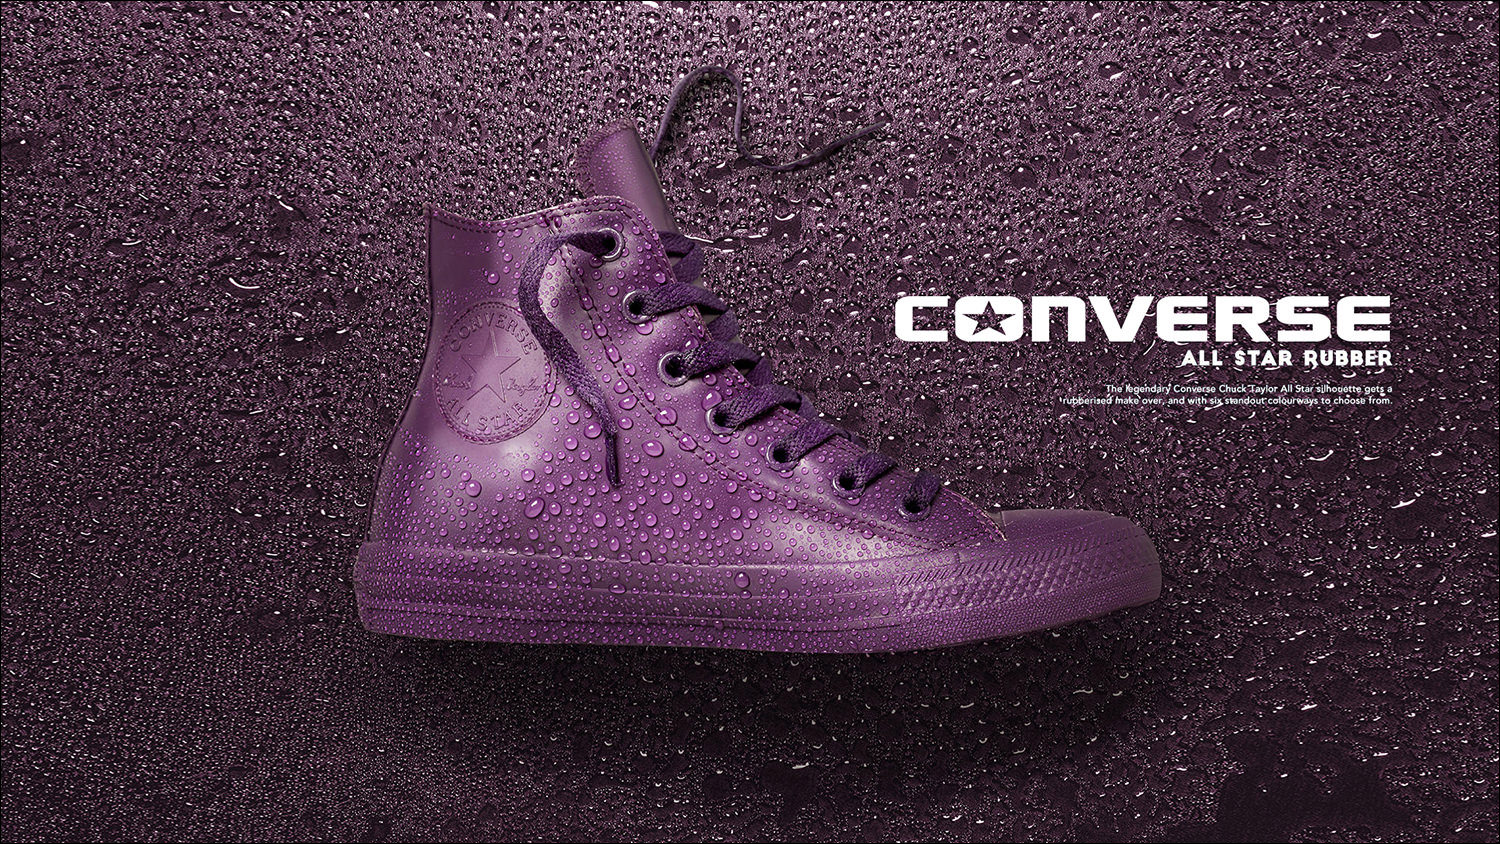 Creative studio still life fashion shoot for Converse footwear